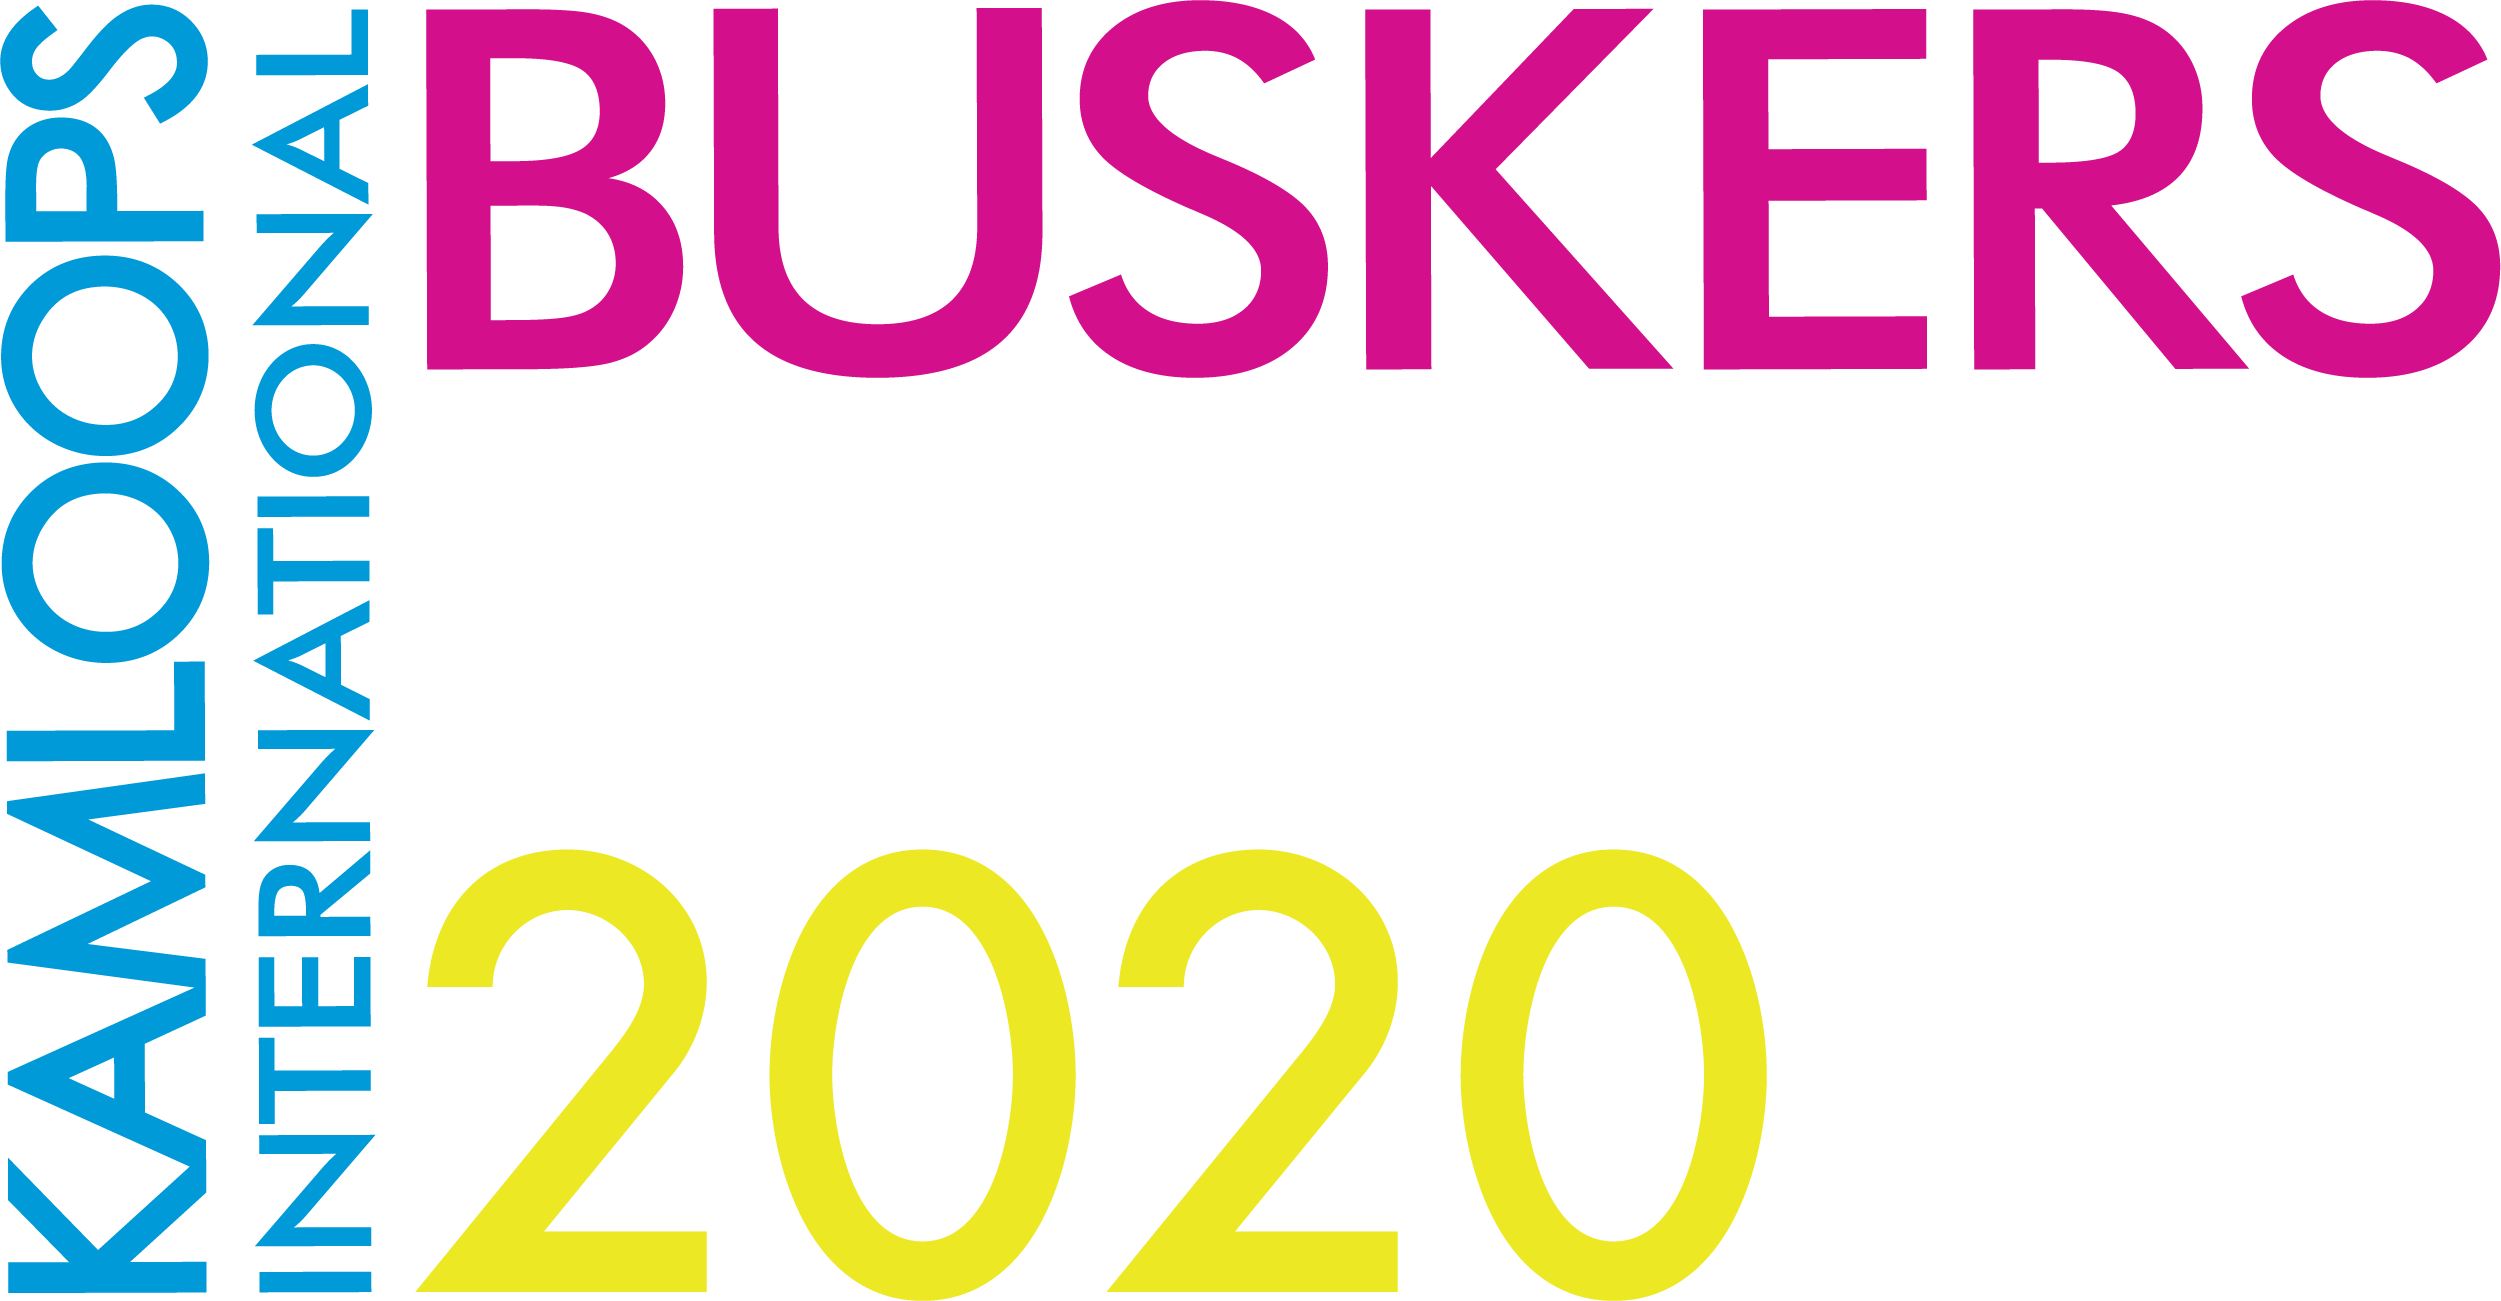 Kamloops International Buskers Festival - July 23 - 26, 2020